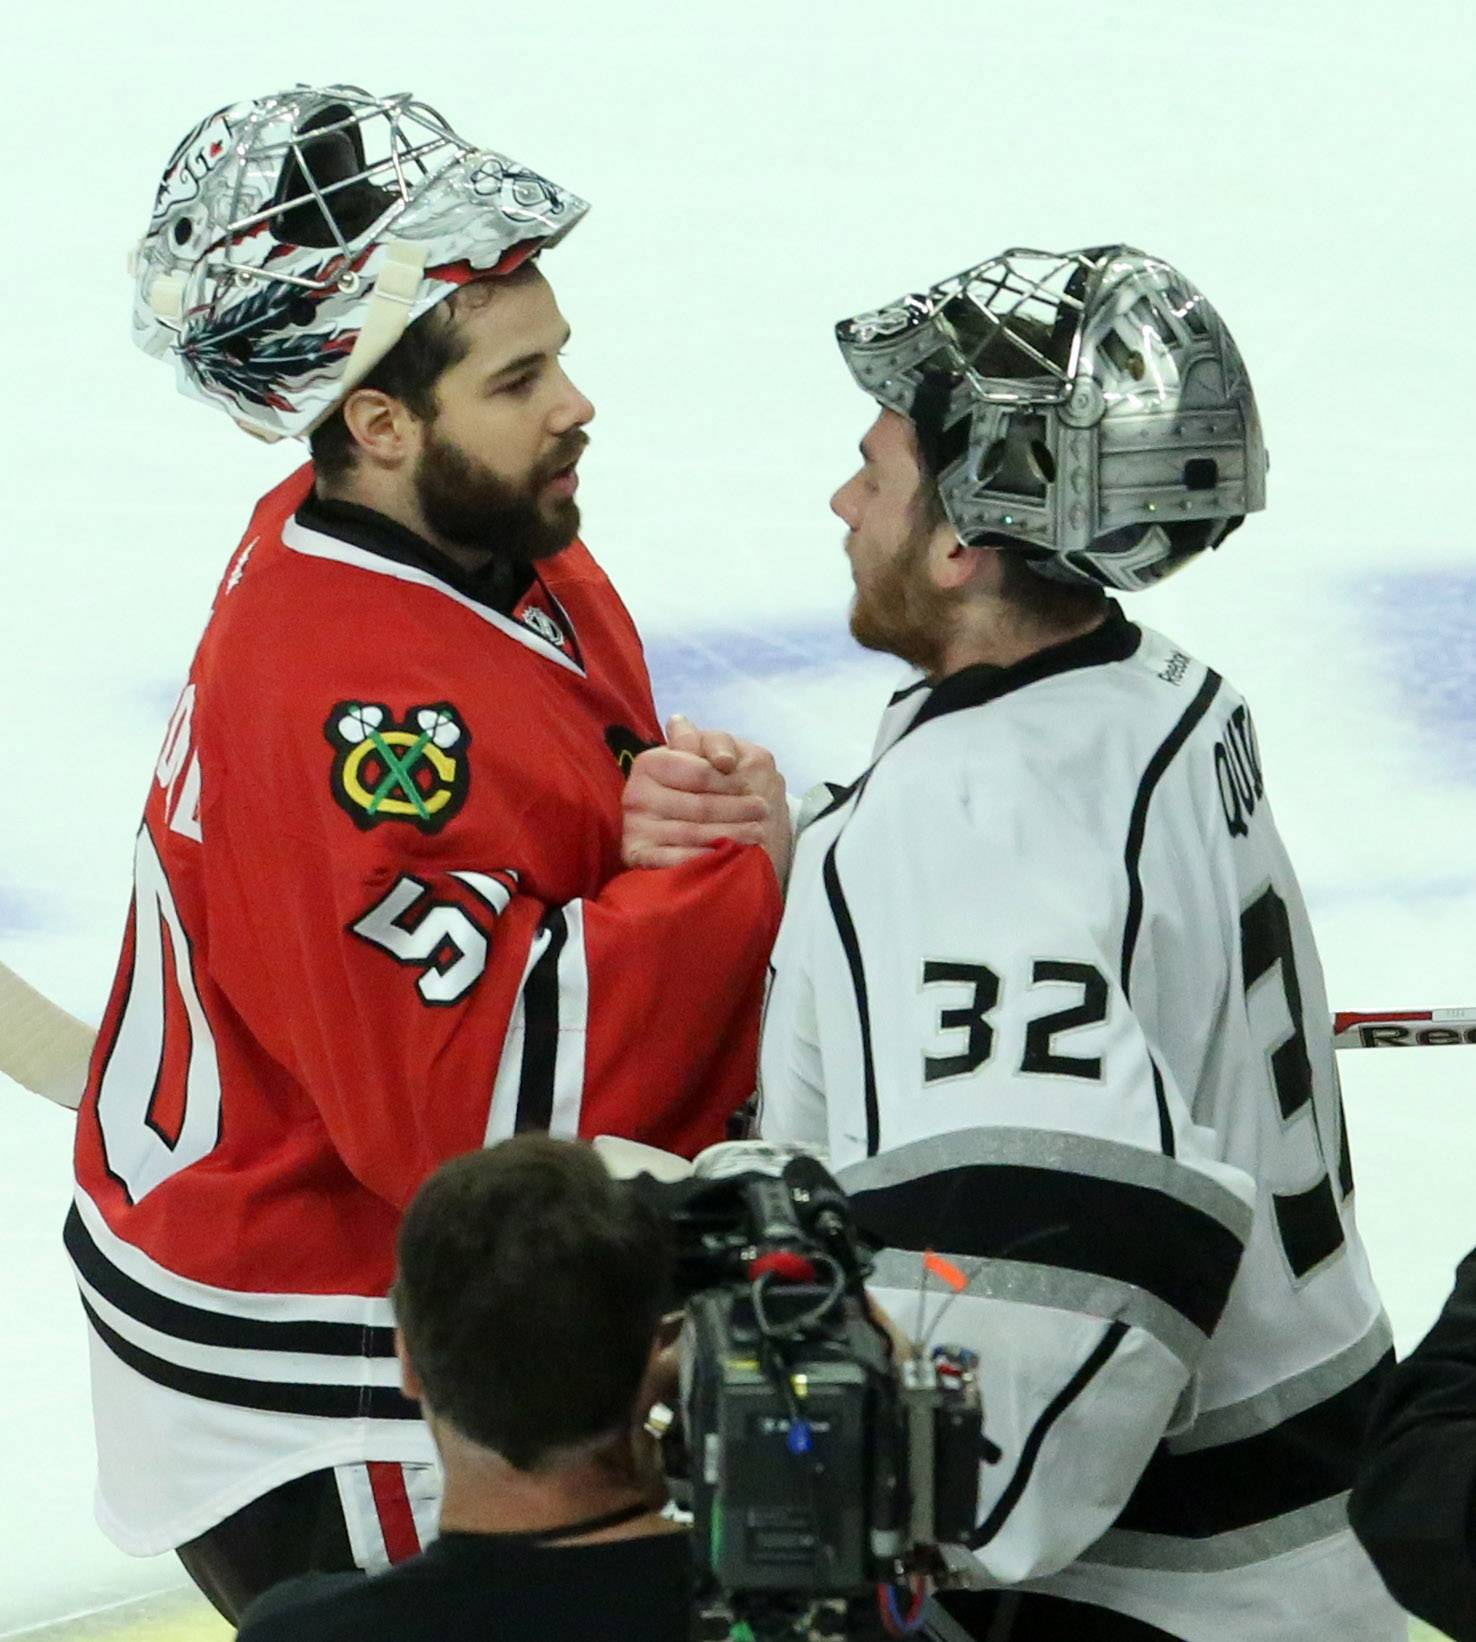 Chicago Blackhawks goalie Corey Crawford gets a handshake from Los Angeles Kings goalie Jonathan Quick after letting the winning goal past him in overtime of Game 7 as the Los Angeles Kings win the Western Conference final 5-4 on Sunday at the United Center in Chicago.